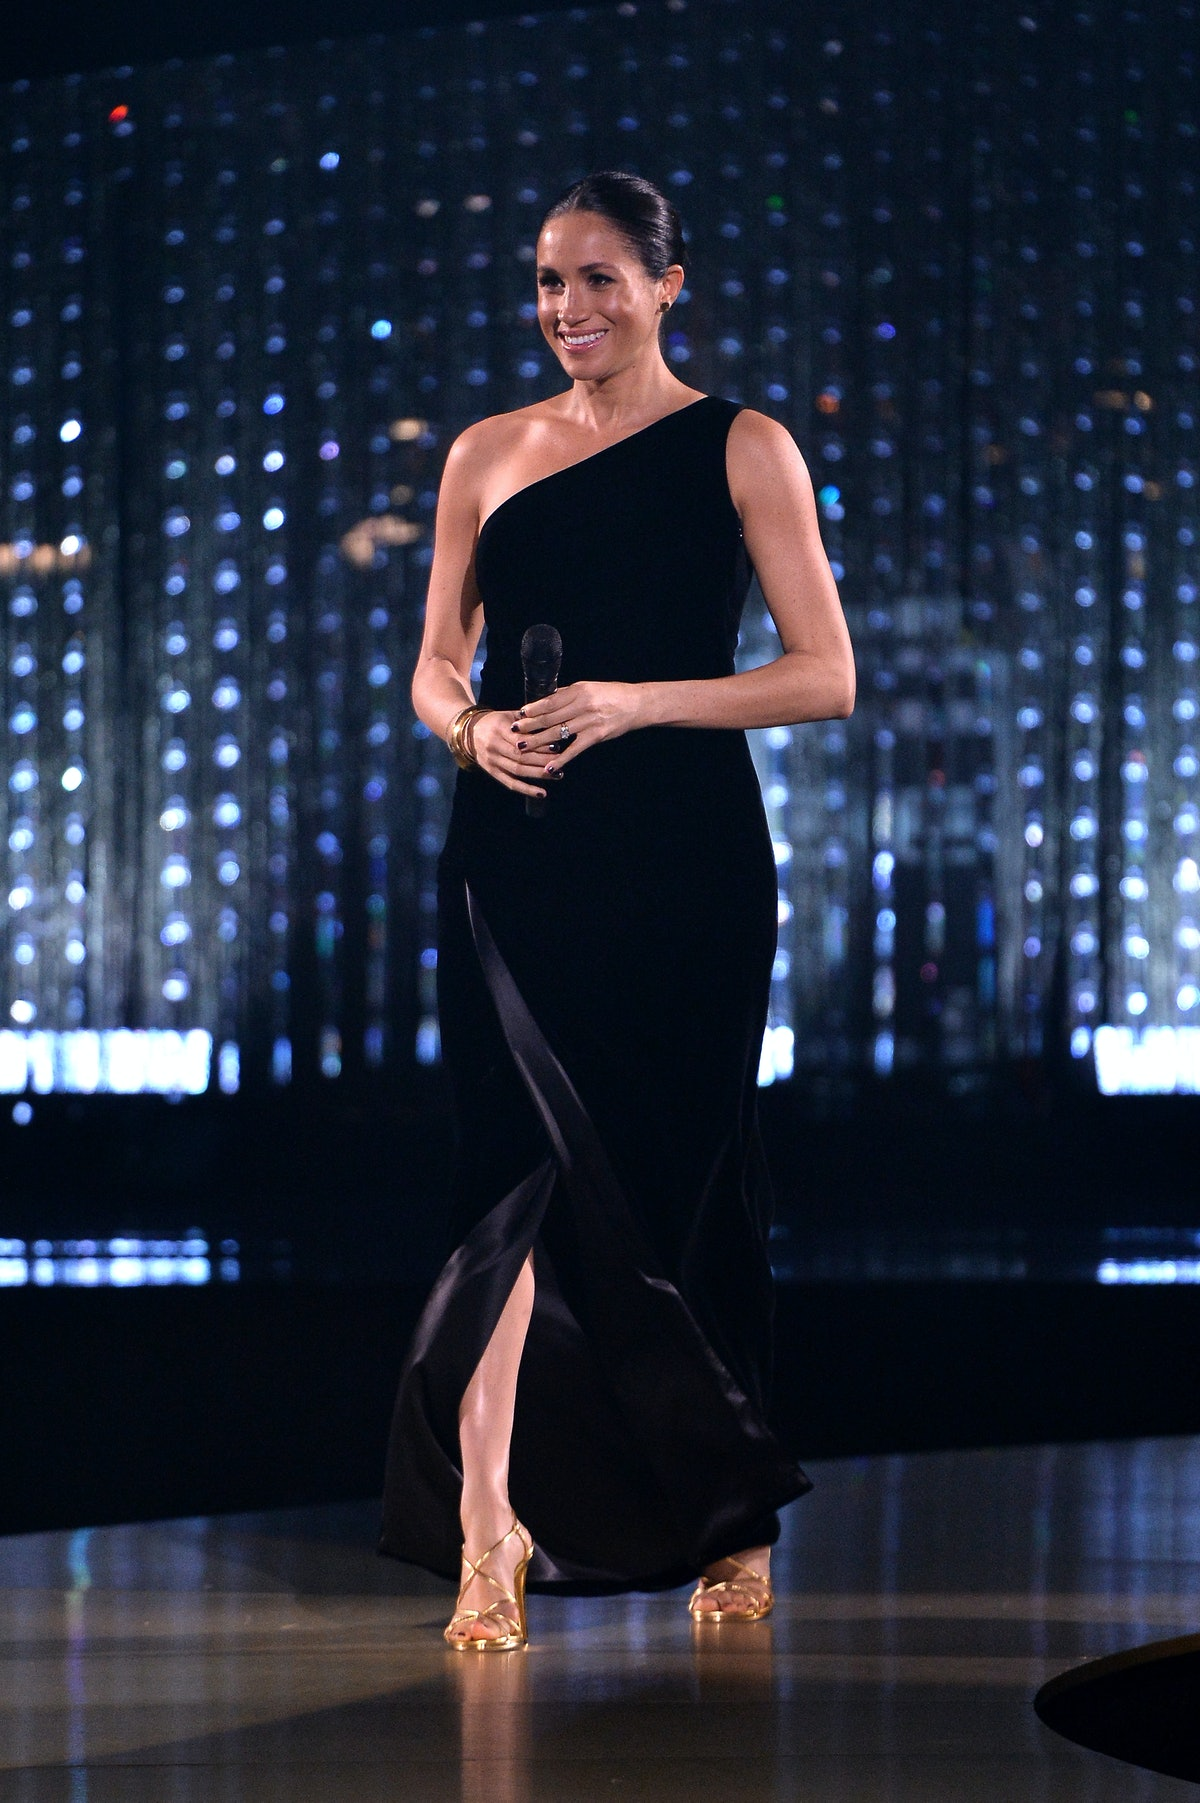 Meghan Markle wore a black one-shoulder Givenchy dress for a the Fashion Awards in December 2018.